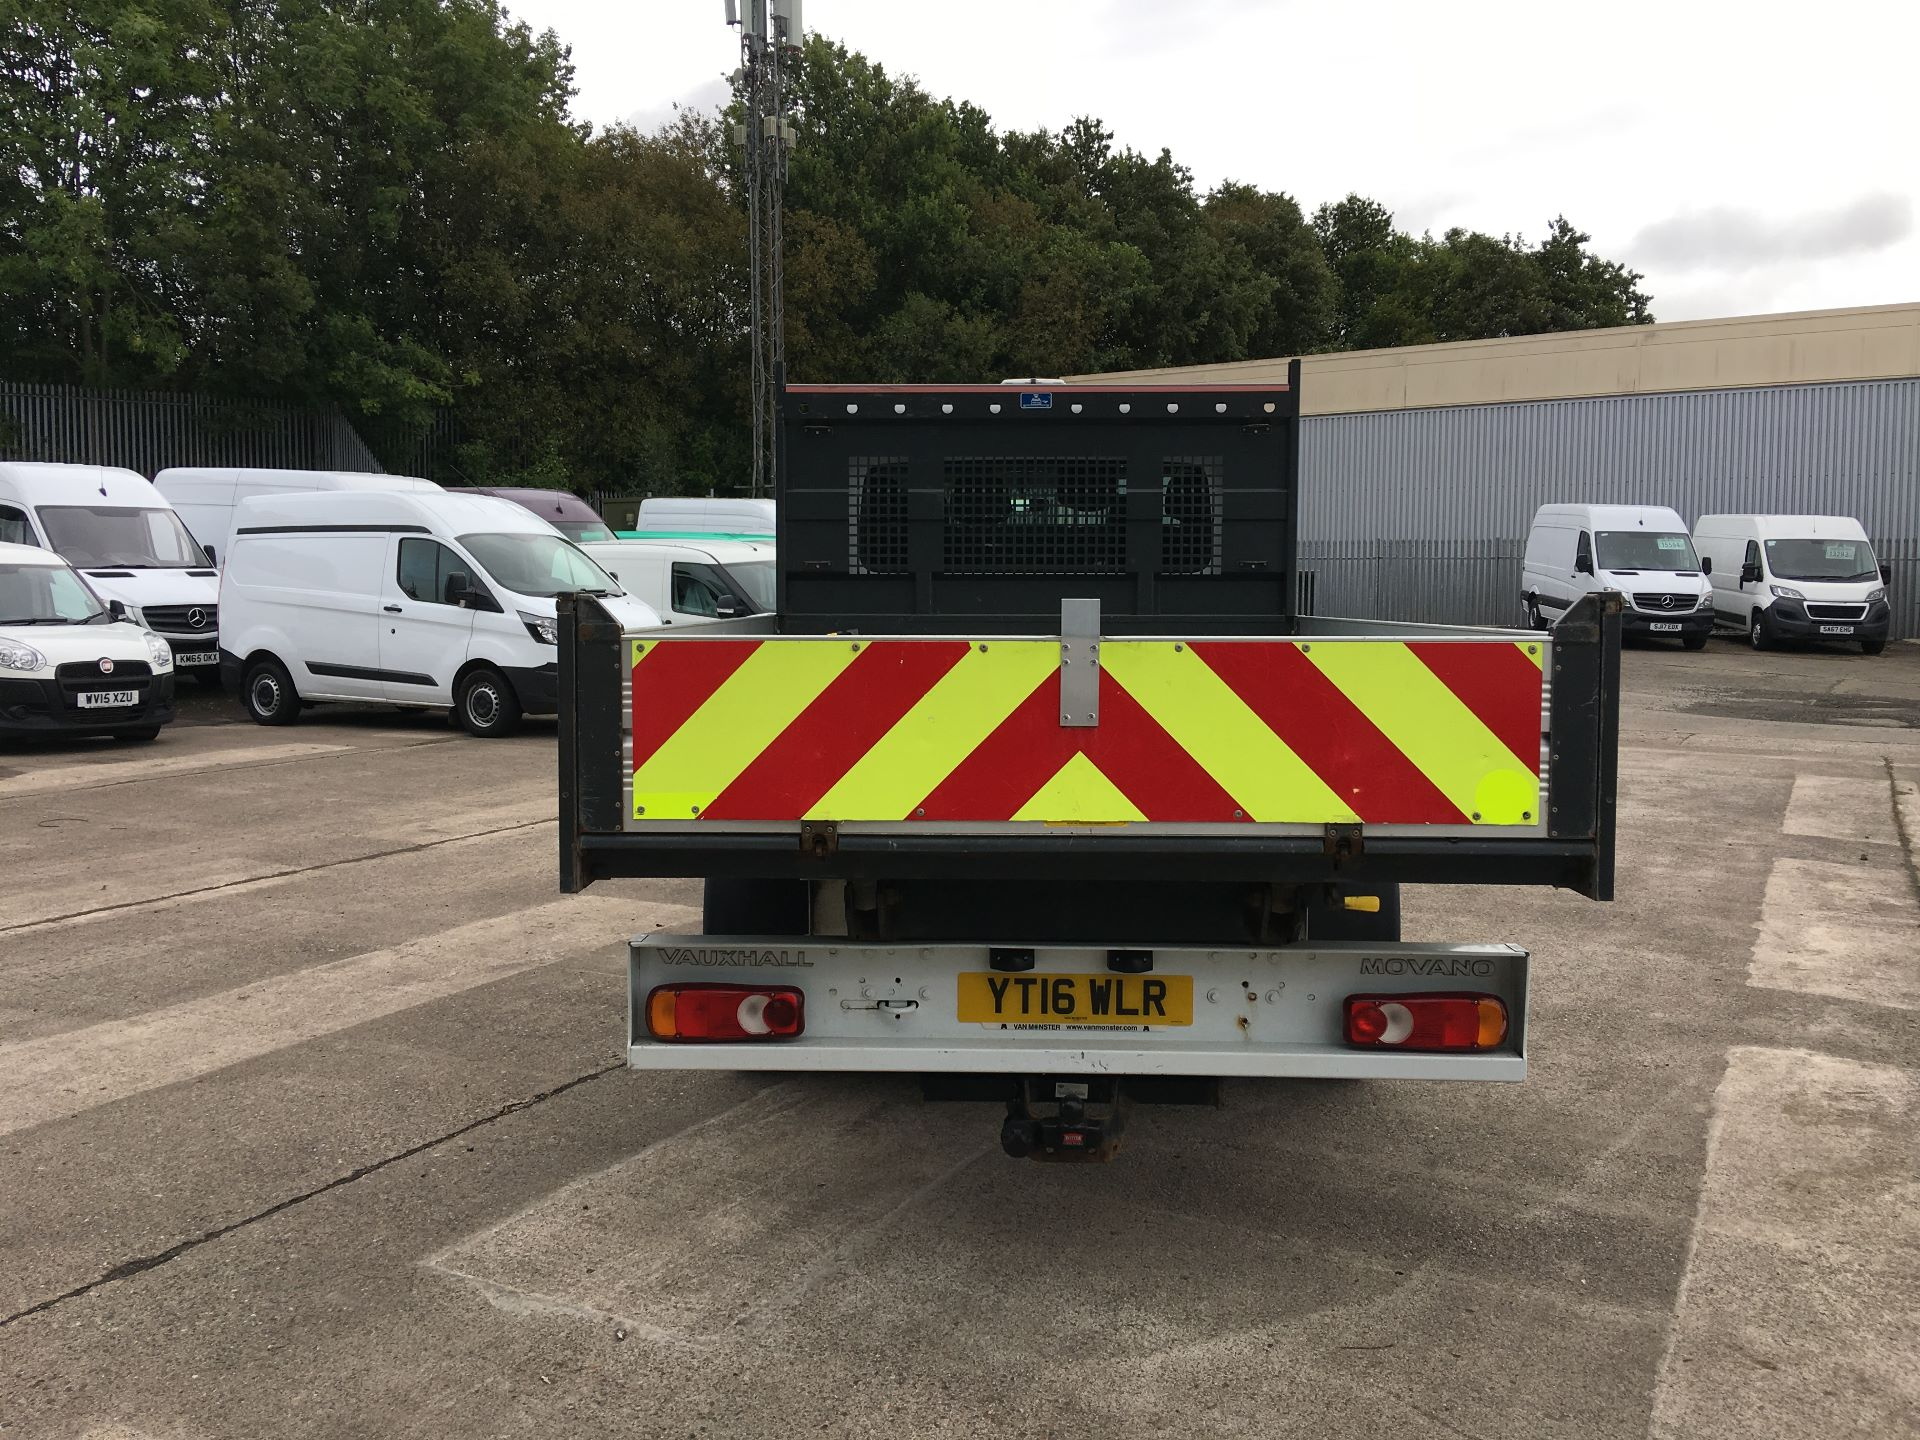 2016 Vauxhall Movano 35 L3 DIESEL RWD 2.3 CDTI 125PS D/CAB TIPPER EURO 5 (YT16WLR) Image 9